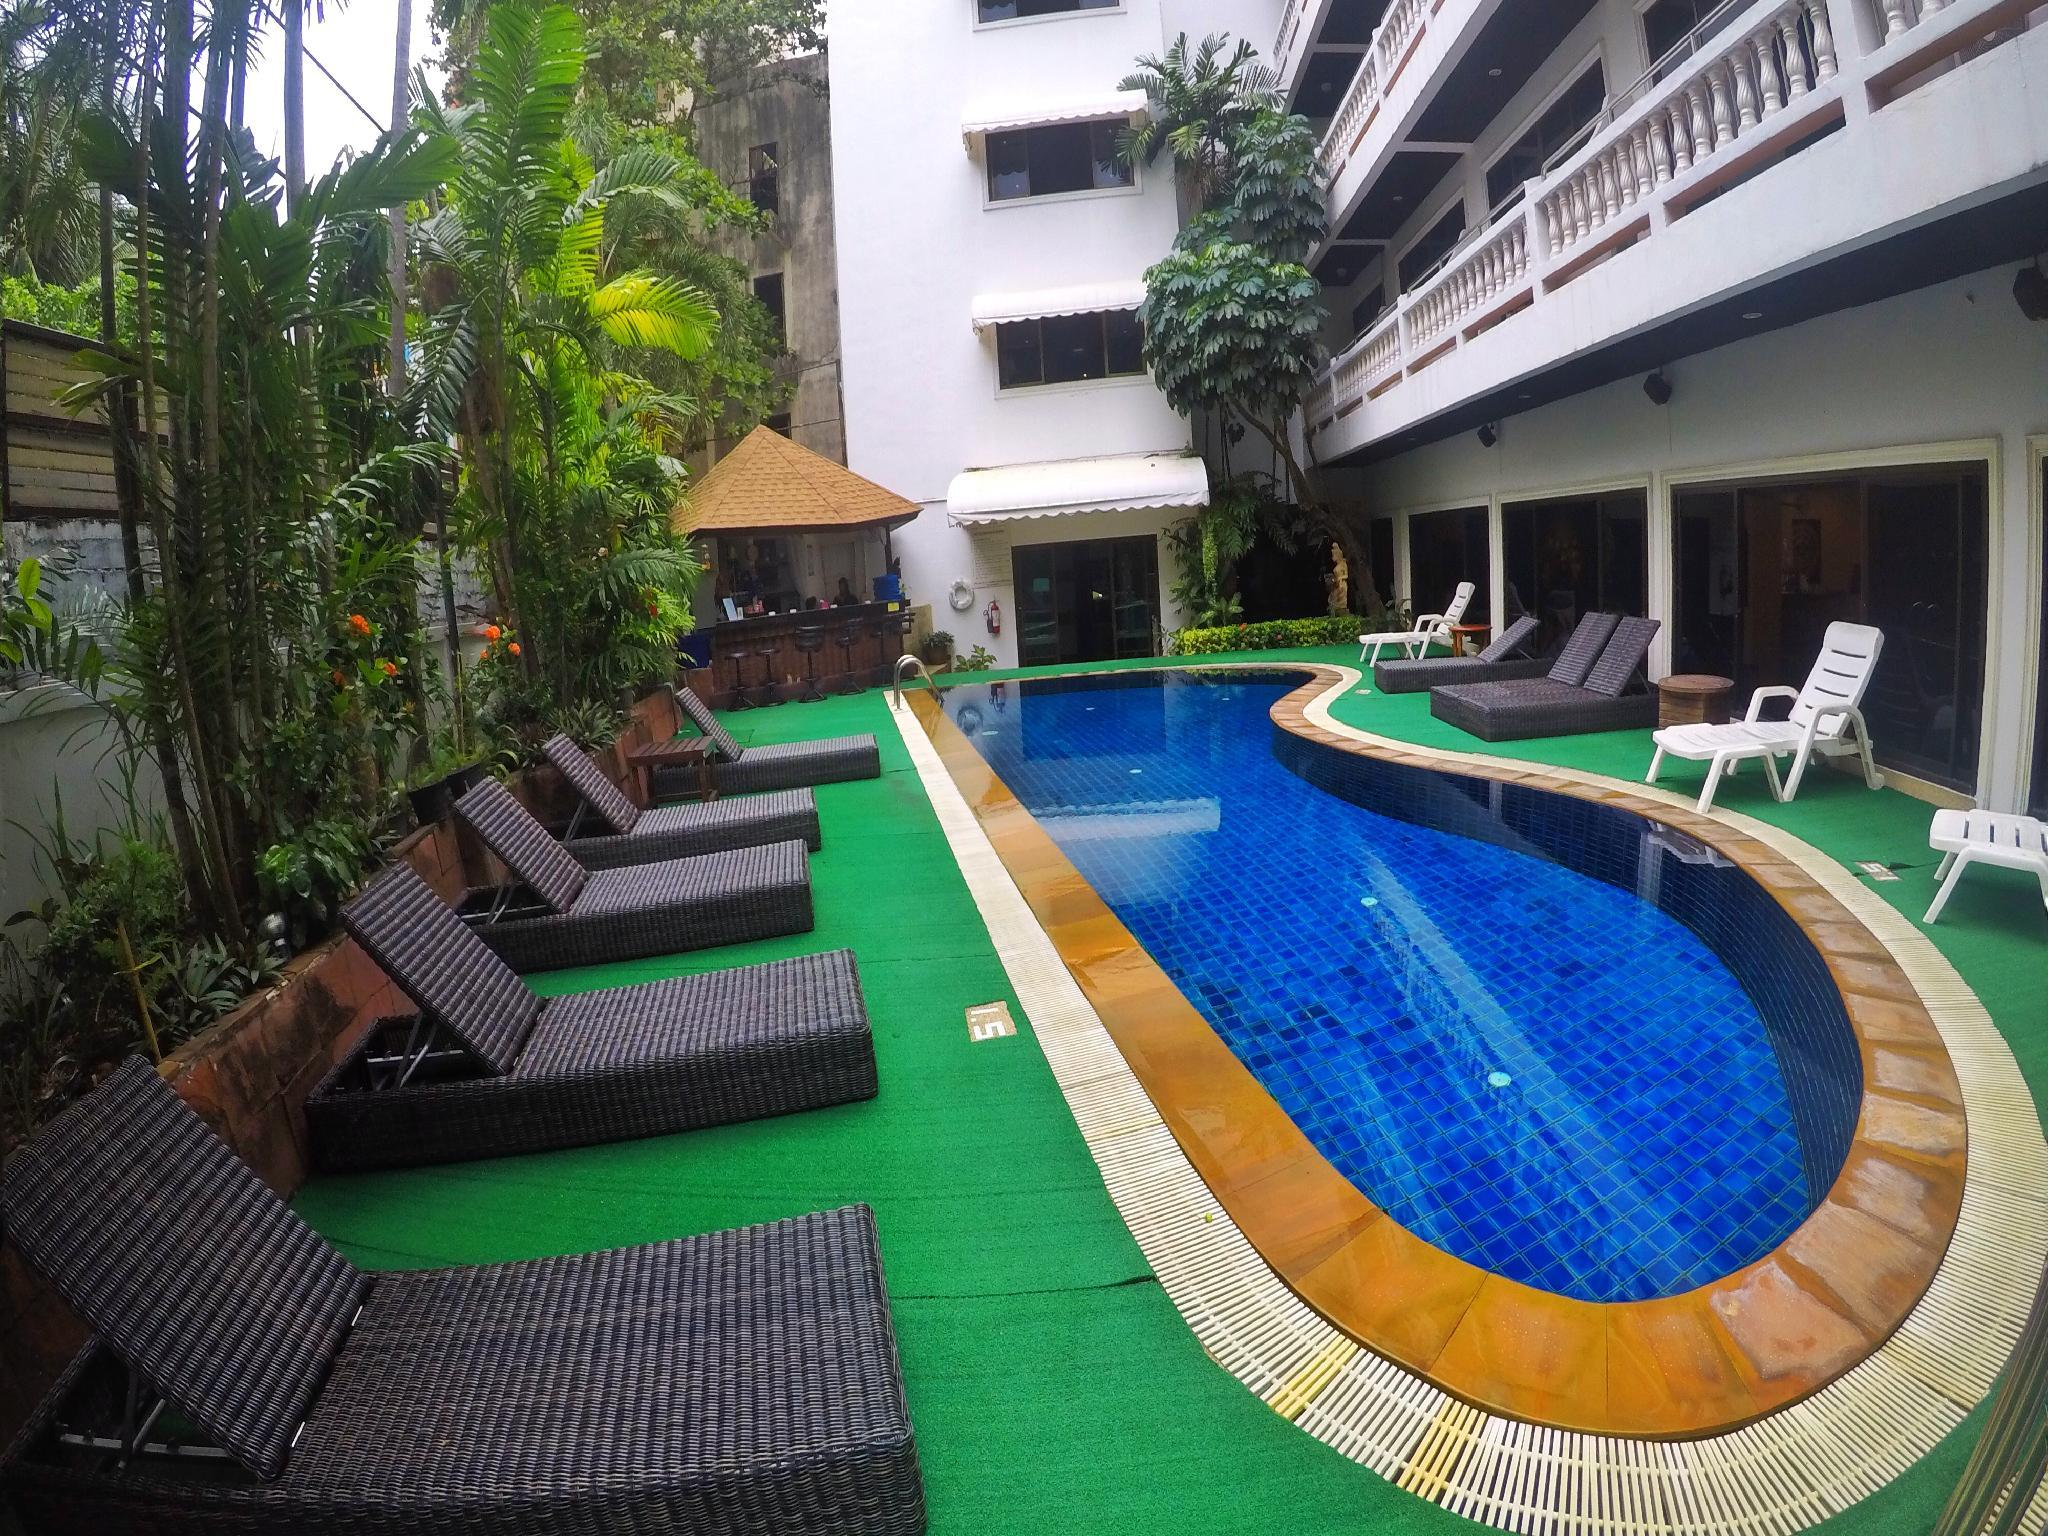 4 Bedroom Apartment In Center Of Patong Beach  D